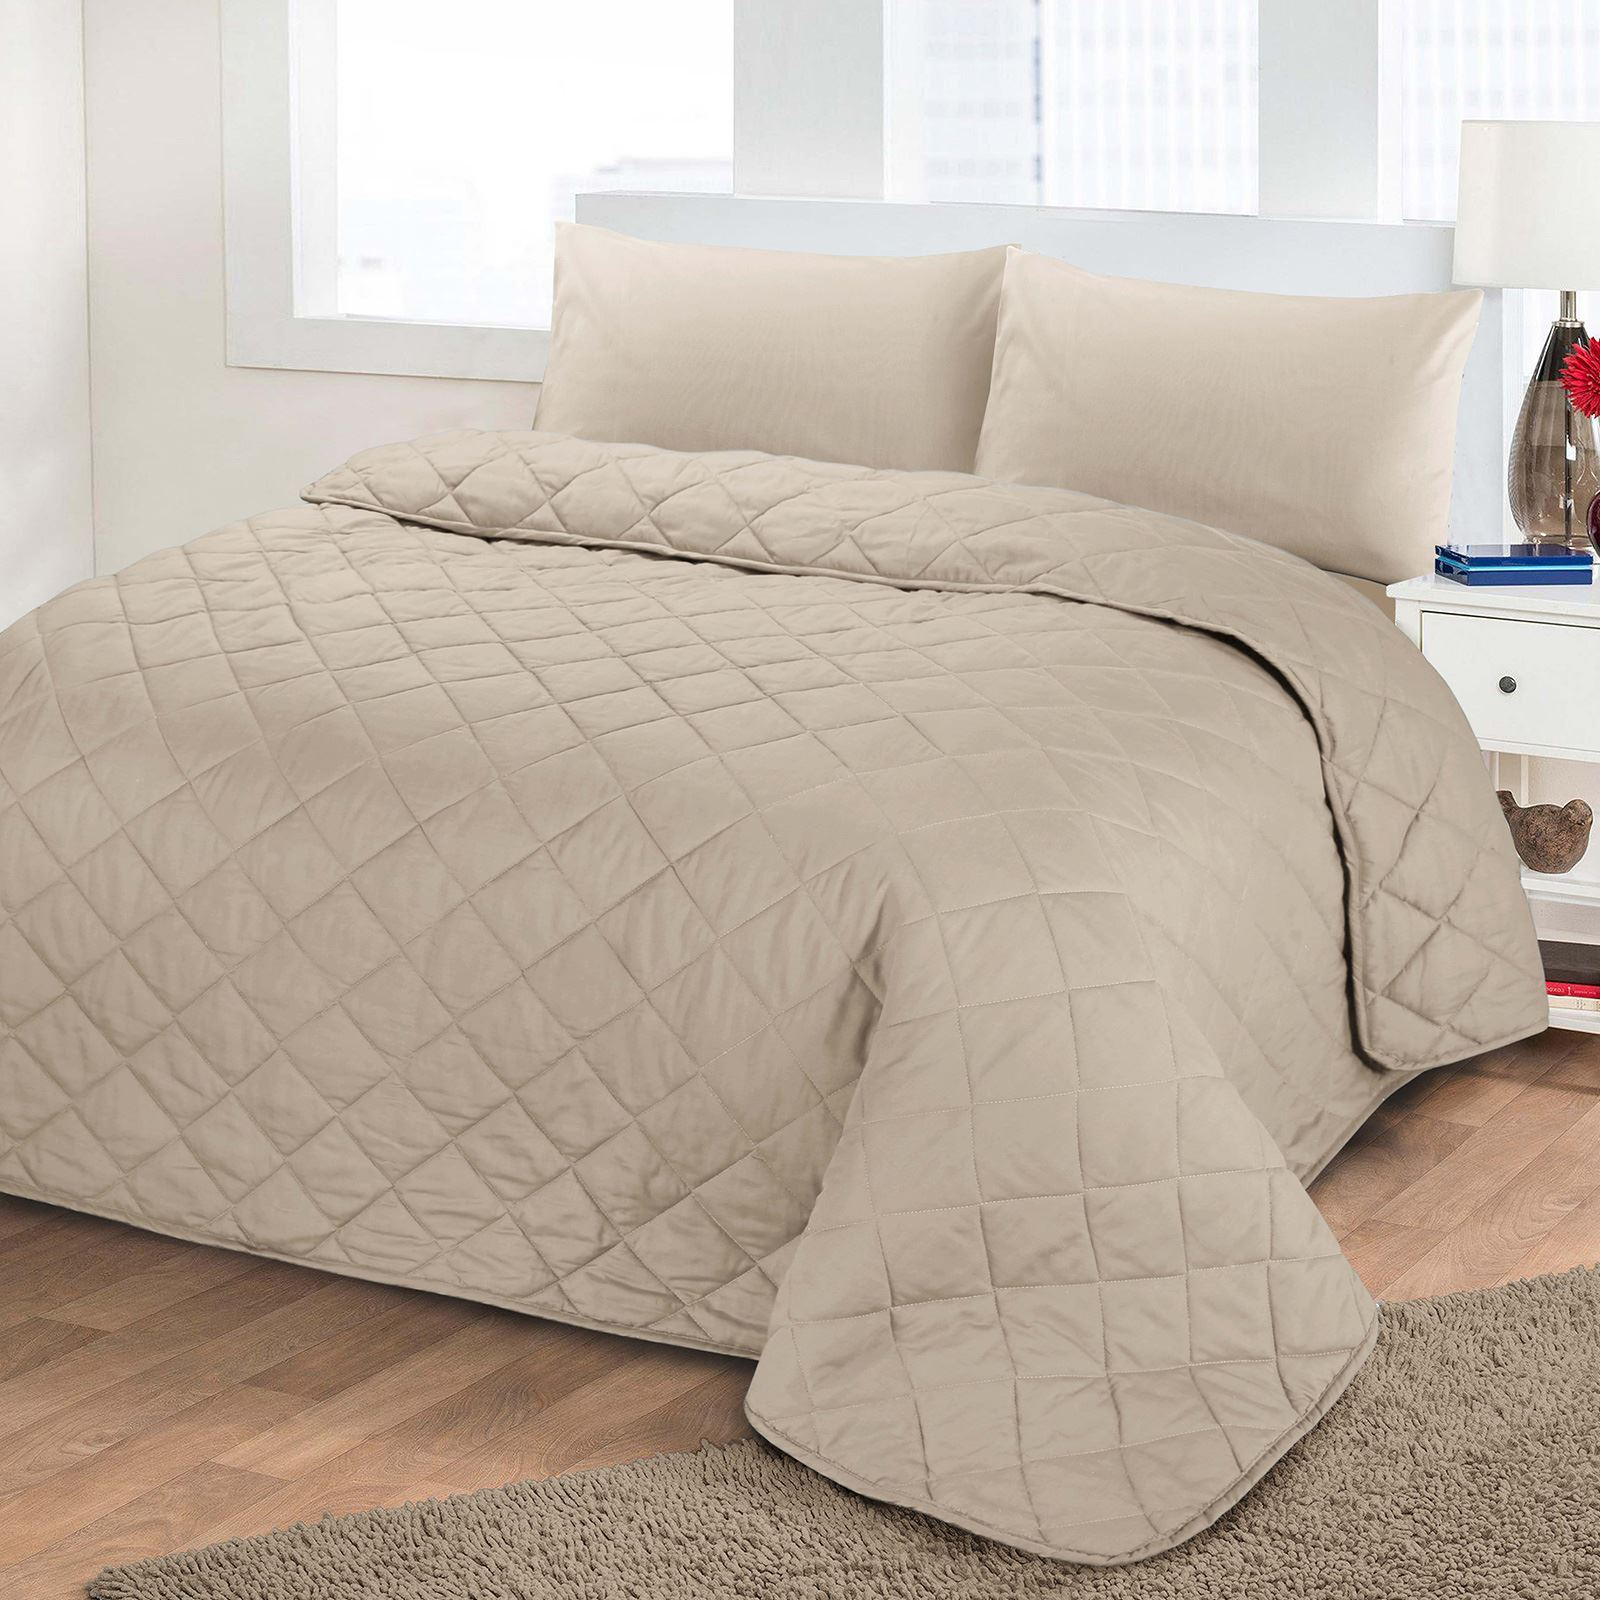 Luxury Soft Plain Dyed Polycotton Quilted Bedspread Bed